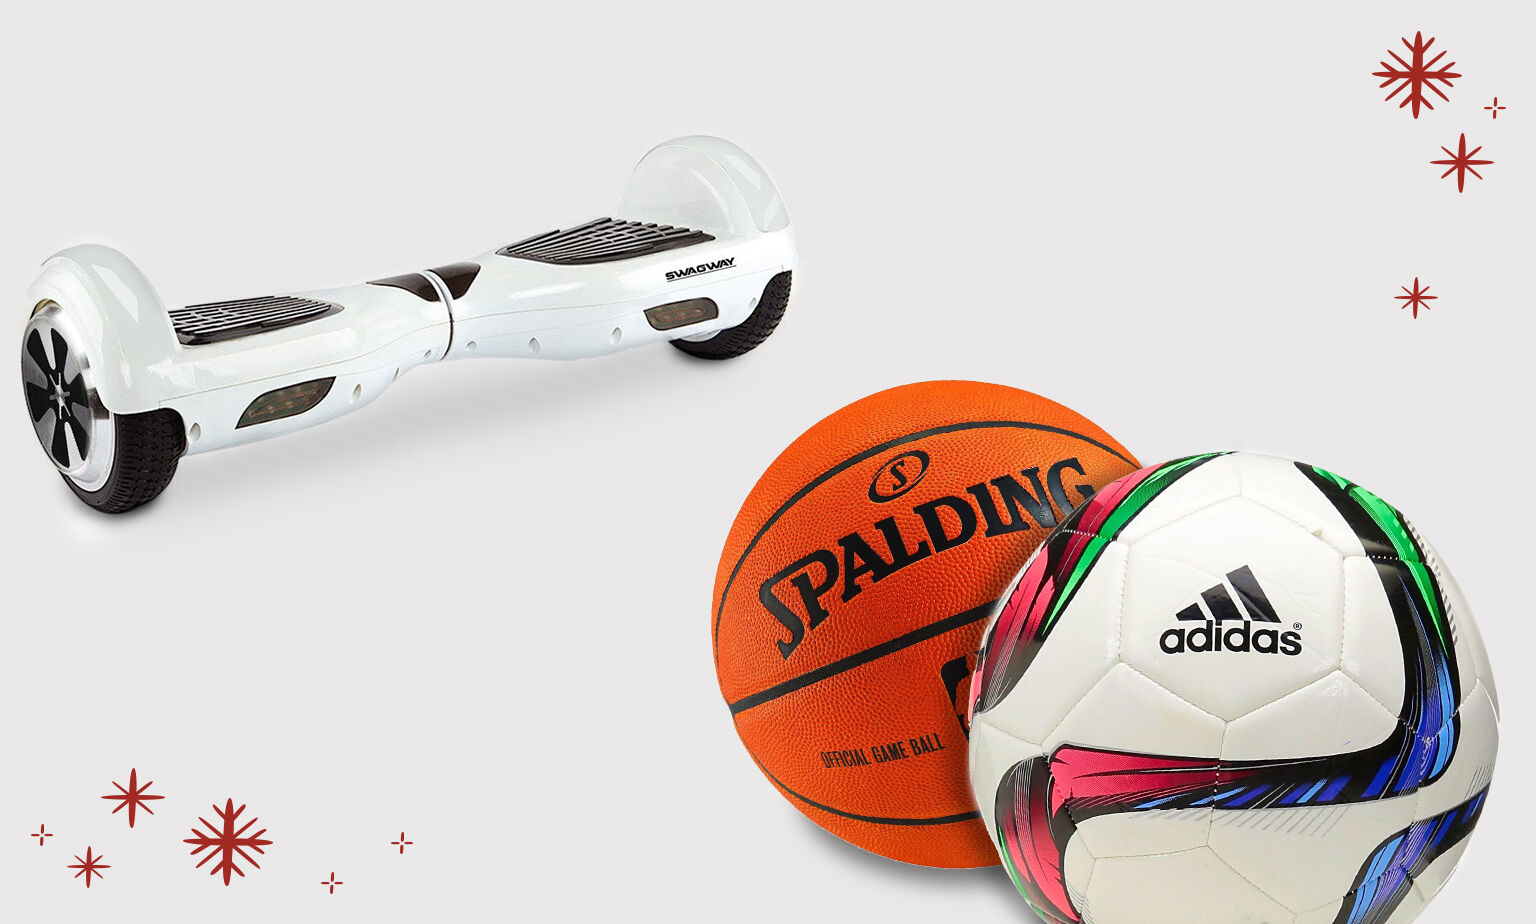 Sporting Goods Gifts for Kids & Teens Up to 50% off